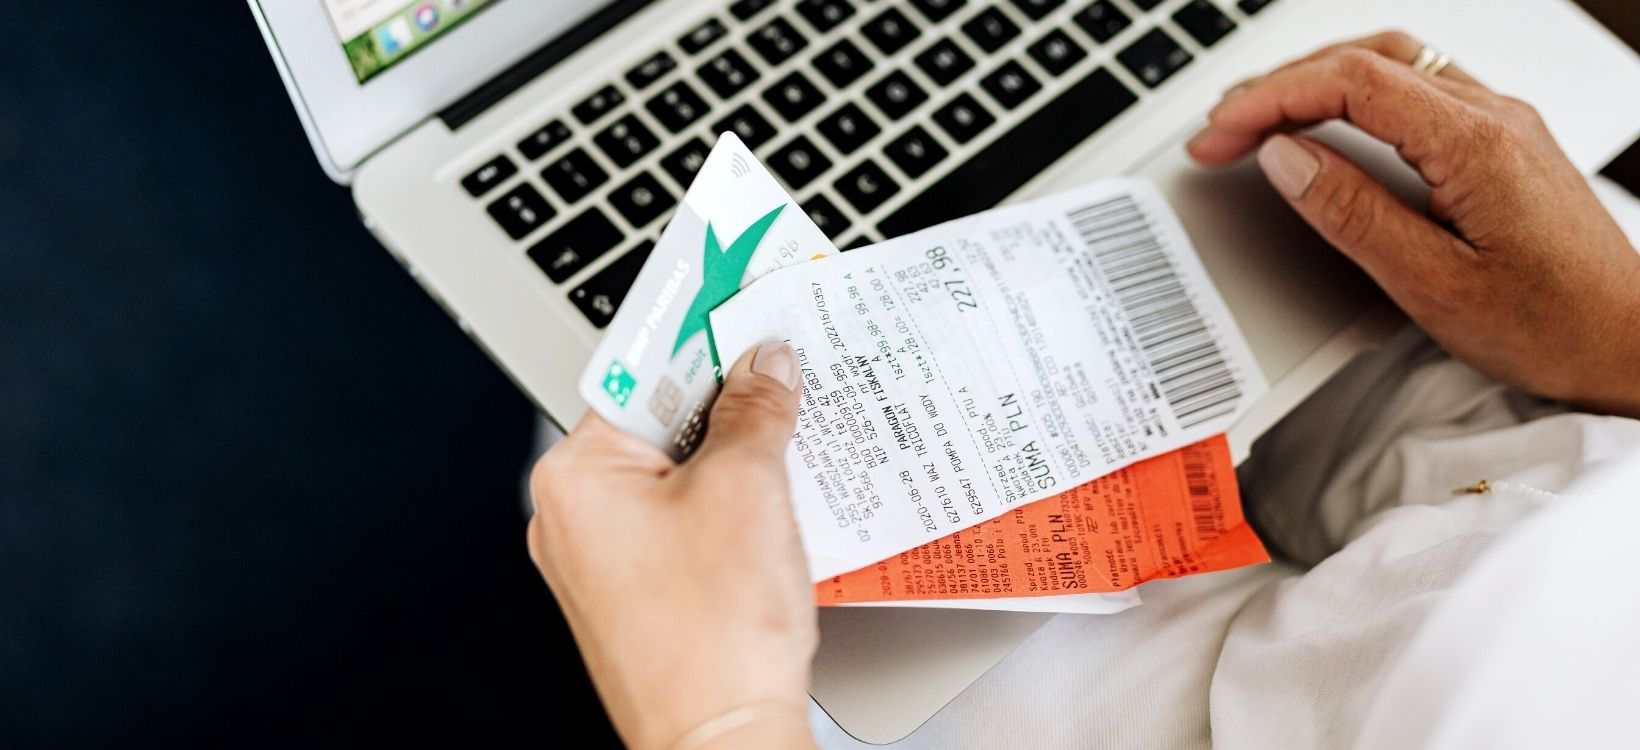 Person sits with laptop, sorting through receipts to prep for taxes